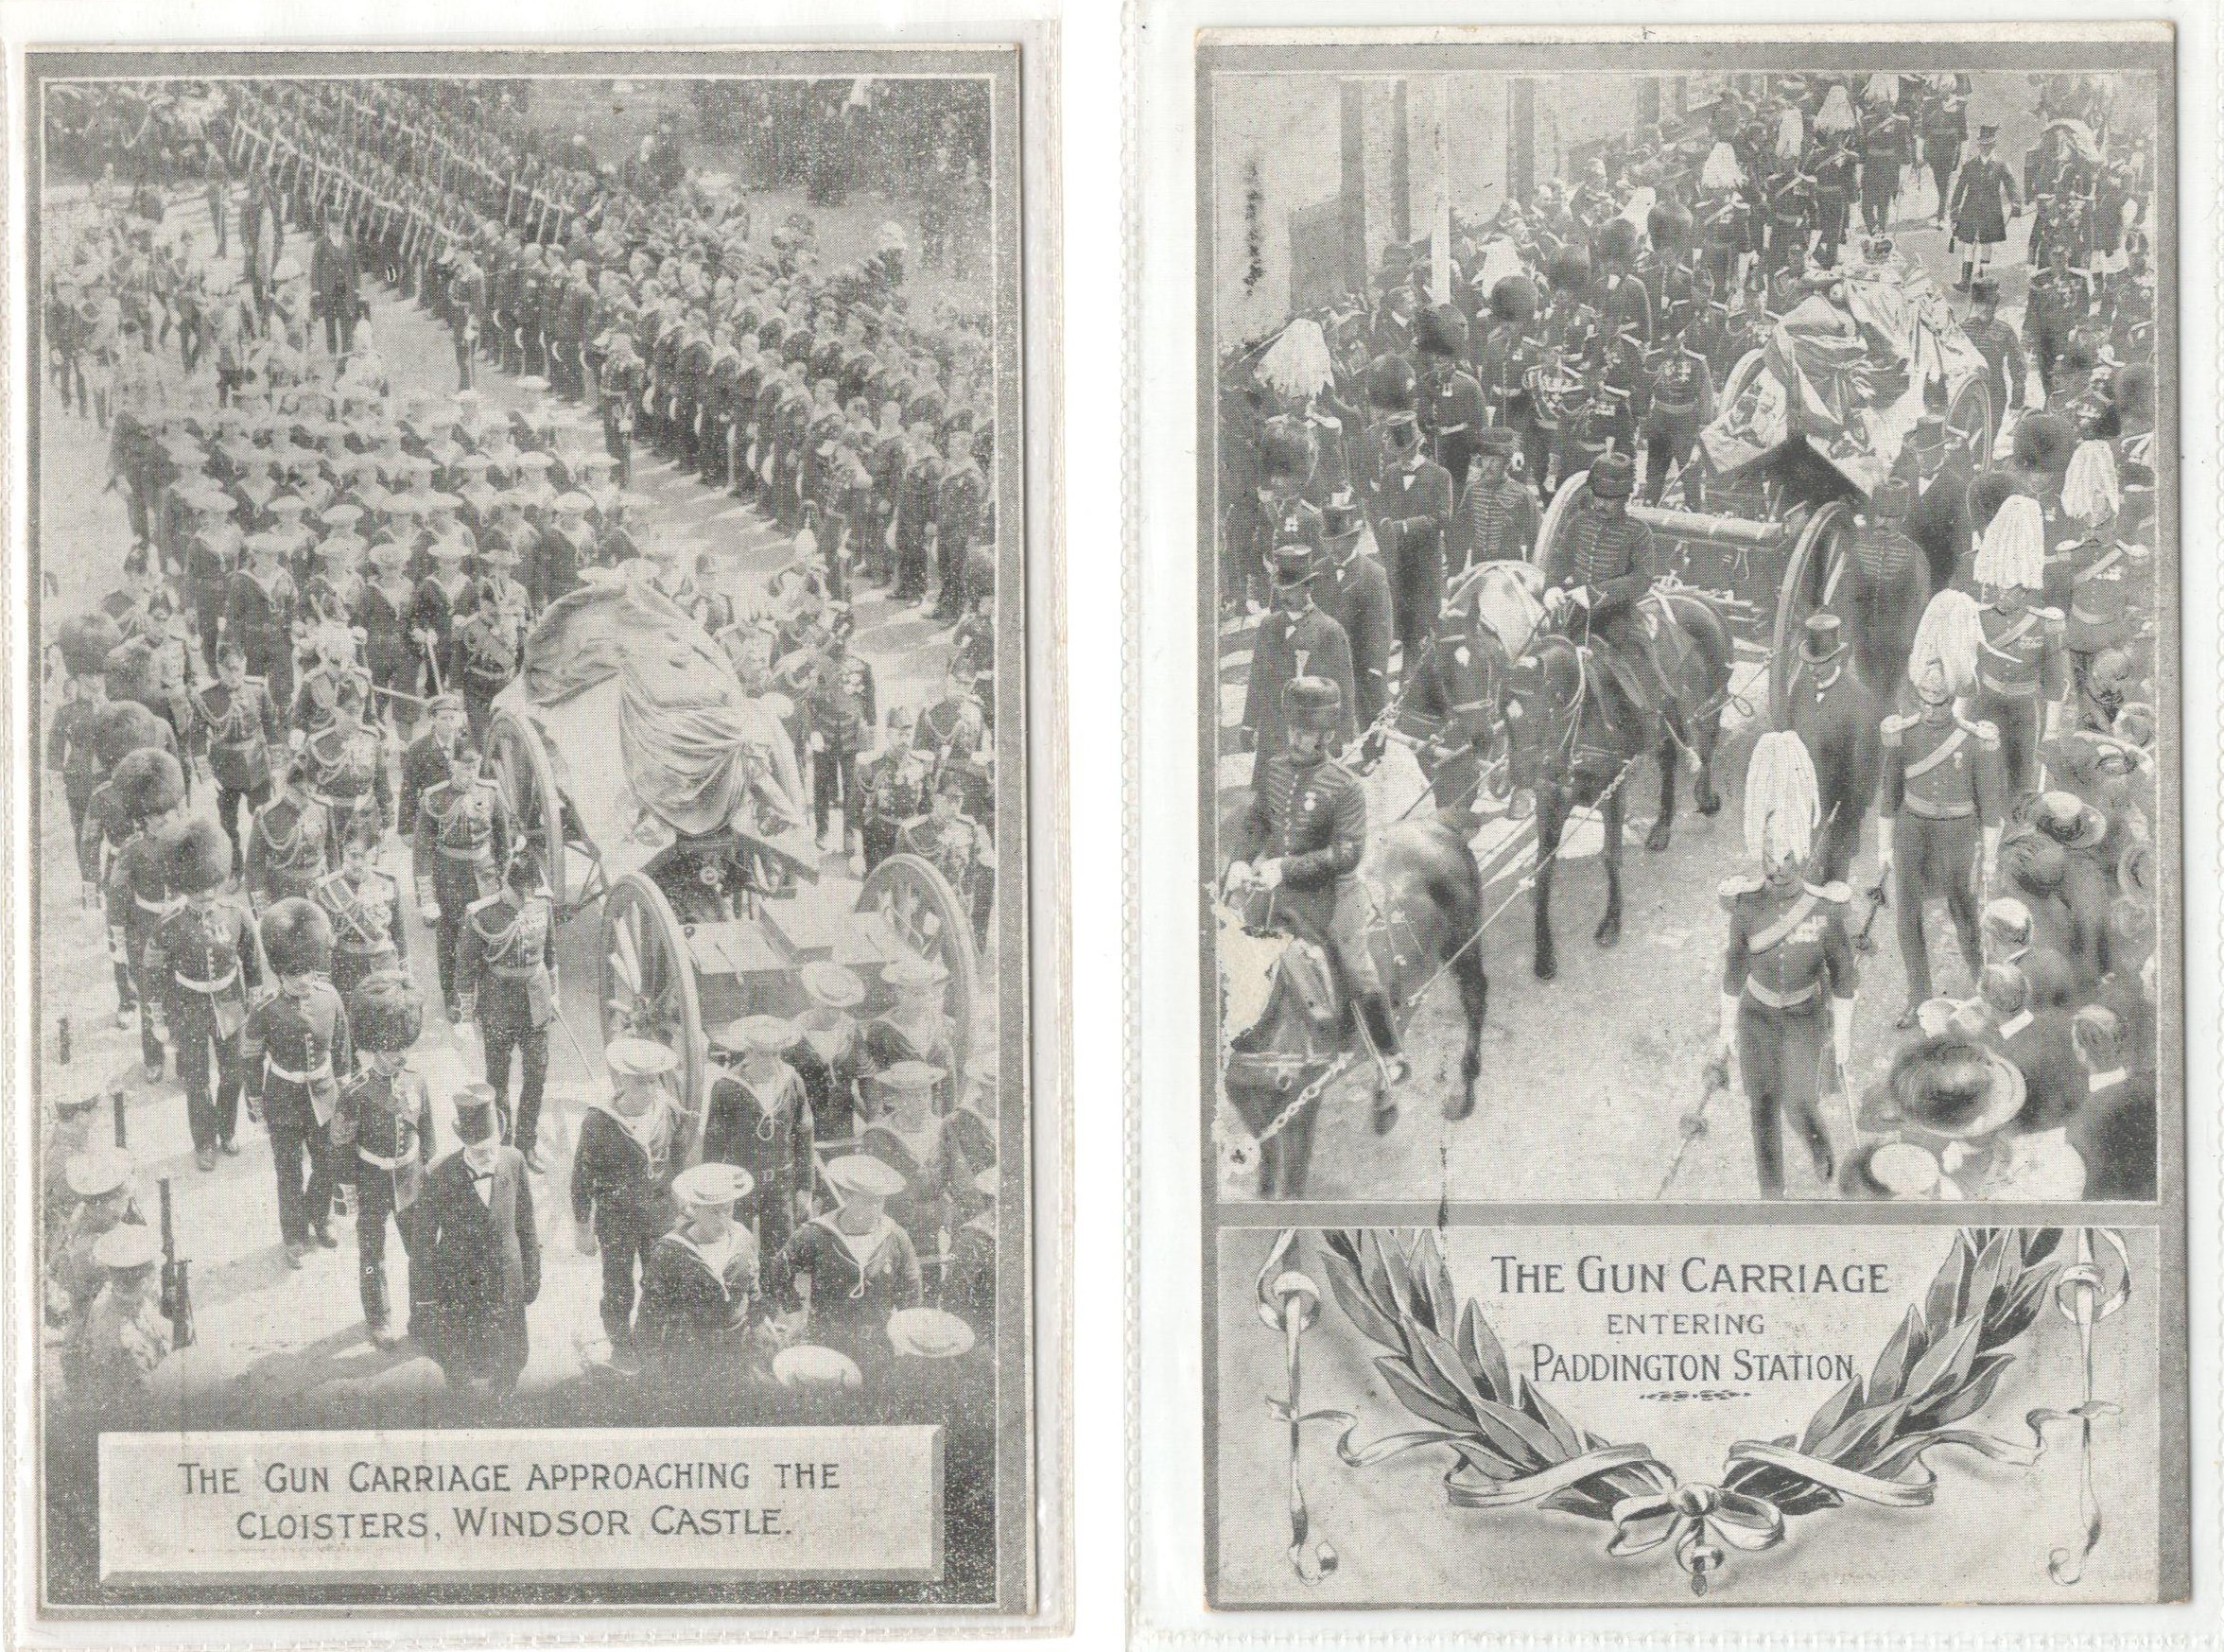 Lot 98 - FOUR MILITARY PRINTED POSTCARDS FROM PHOTOS BY UNDERWOOD & UNDERWOOD ARIVAL AT St GEORGE'S